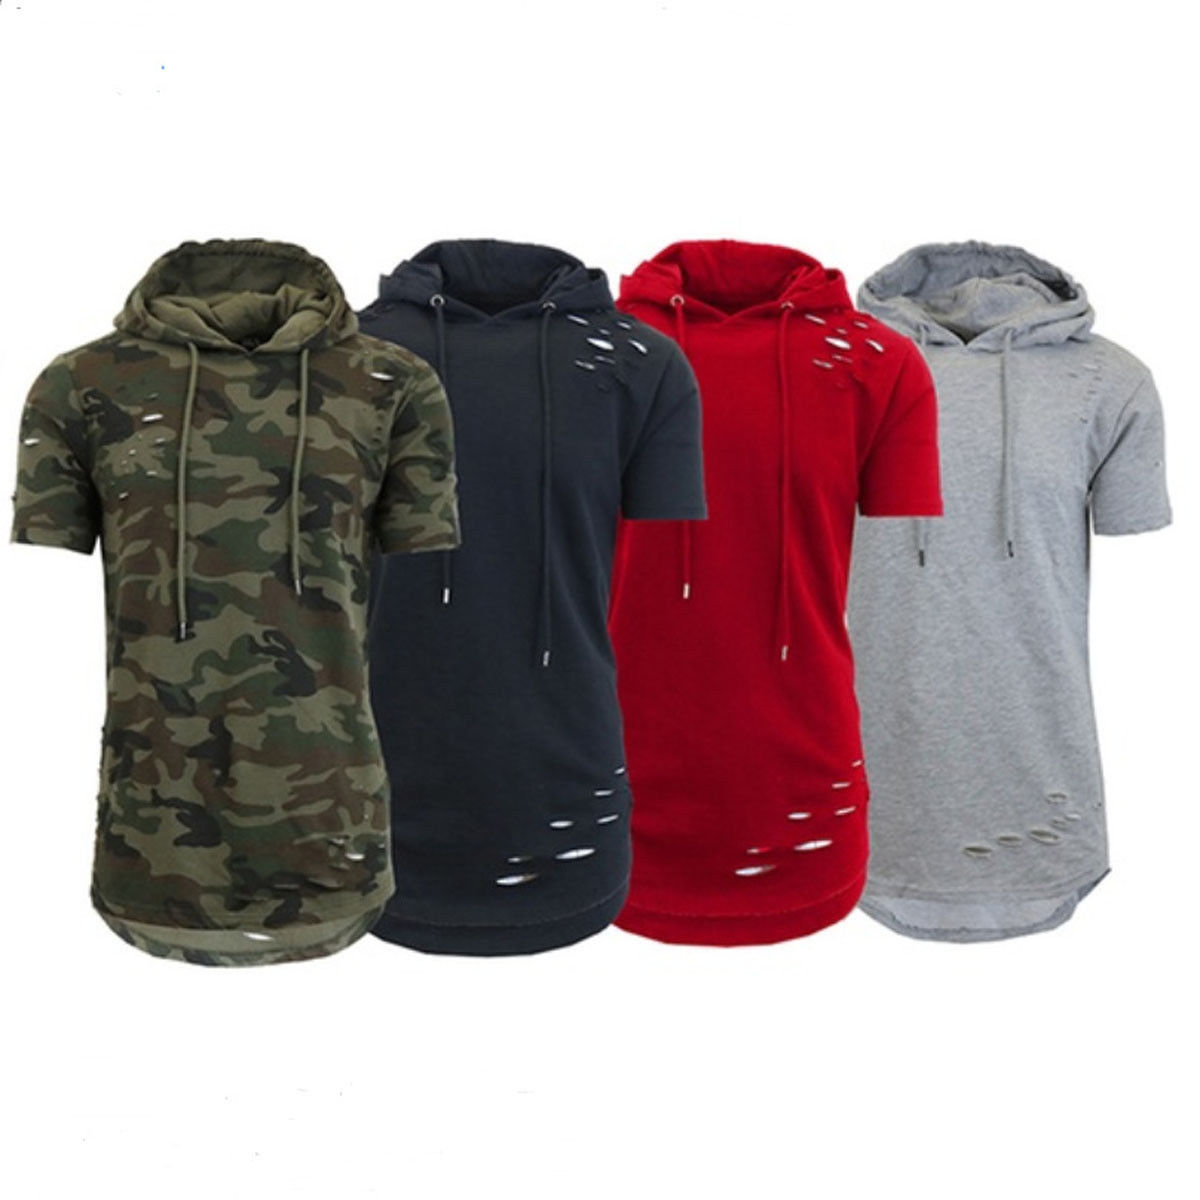 2018 Short Sleeve Hoodies Fashion Slim Hooded Sweatshirt Men Hip Hop Hoodie Men's Rapper Vest Top Camisa Masculina Clothes